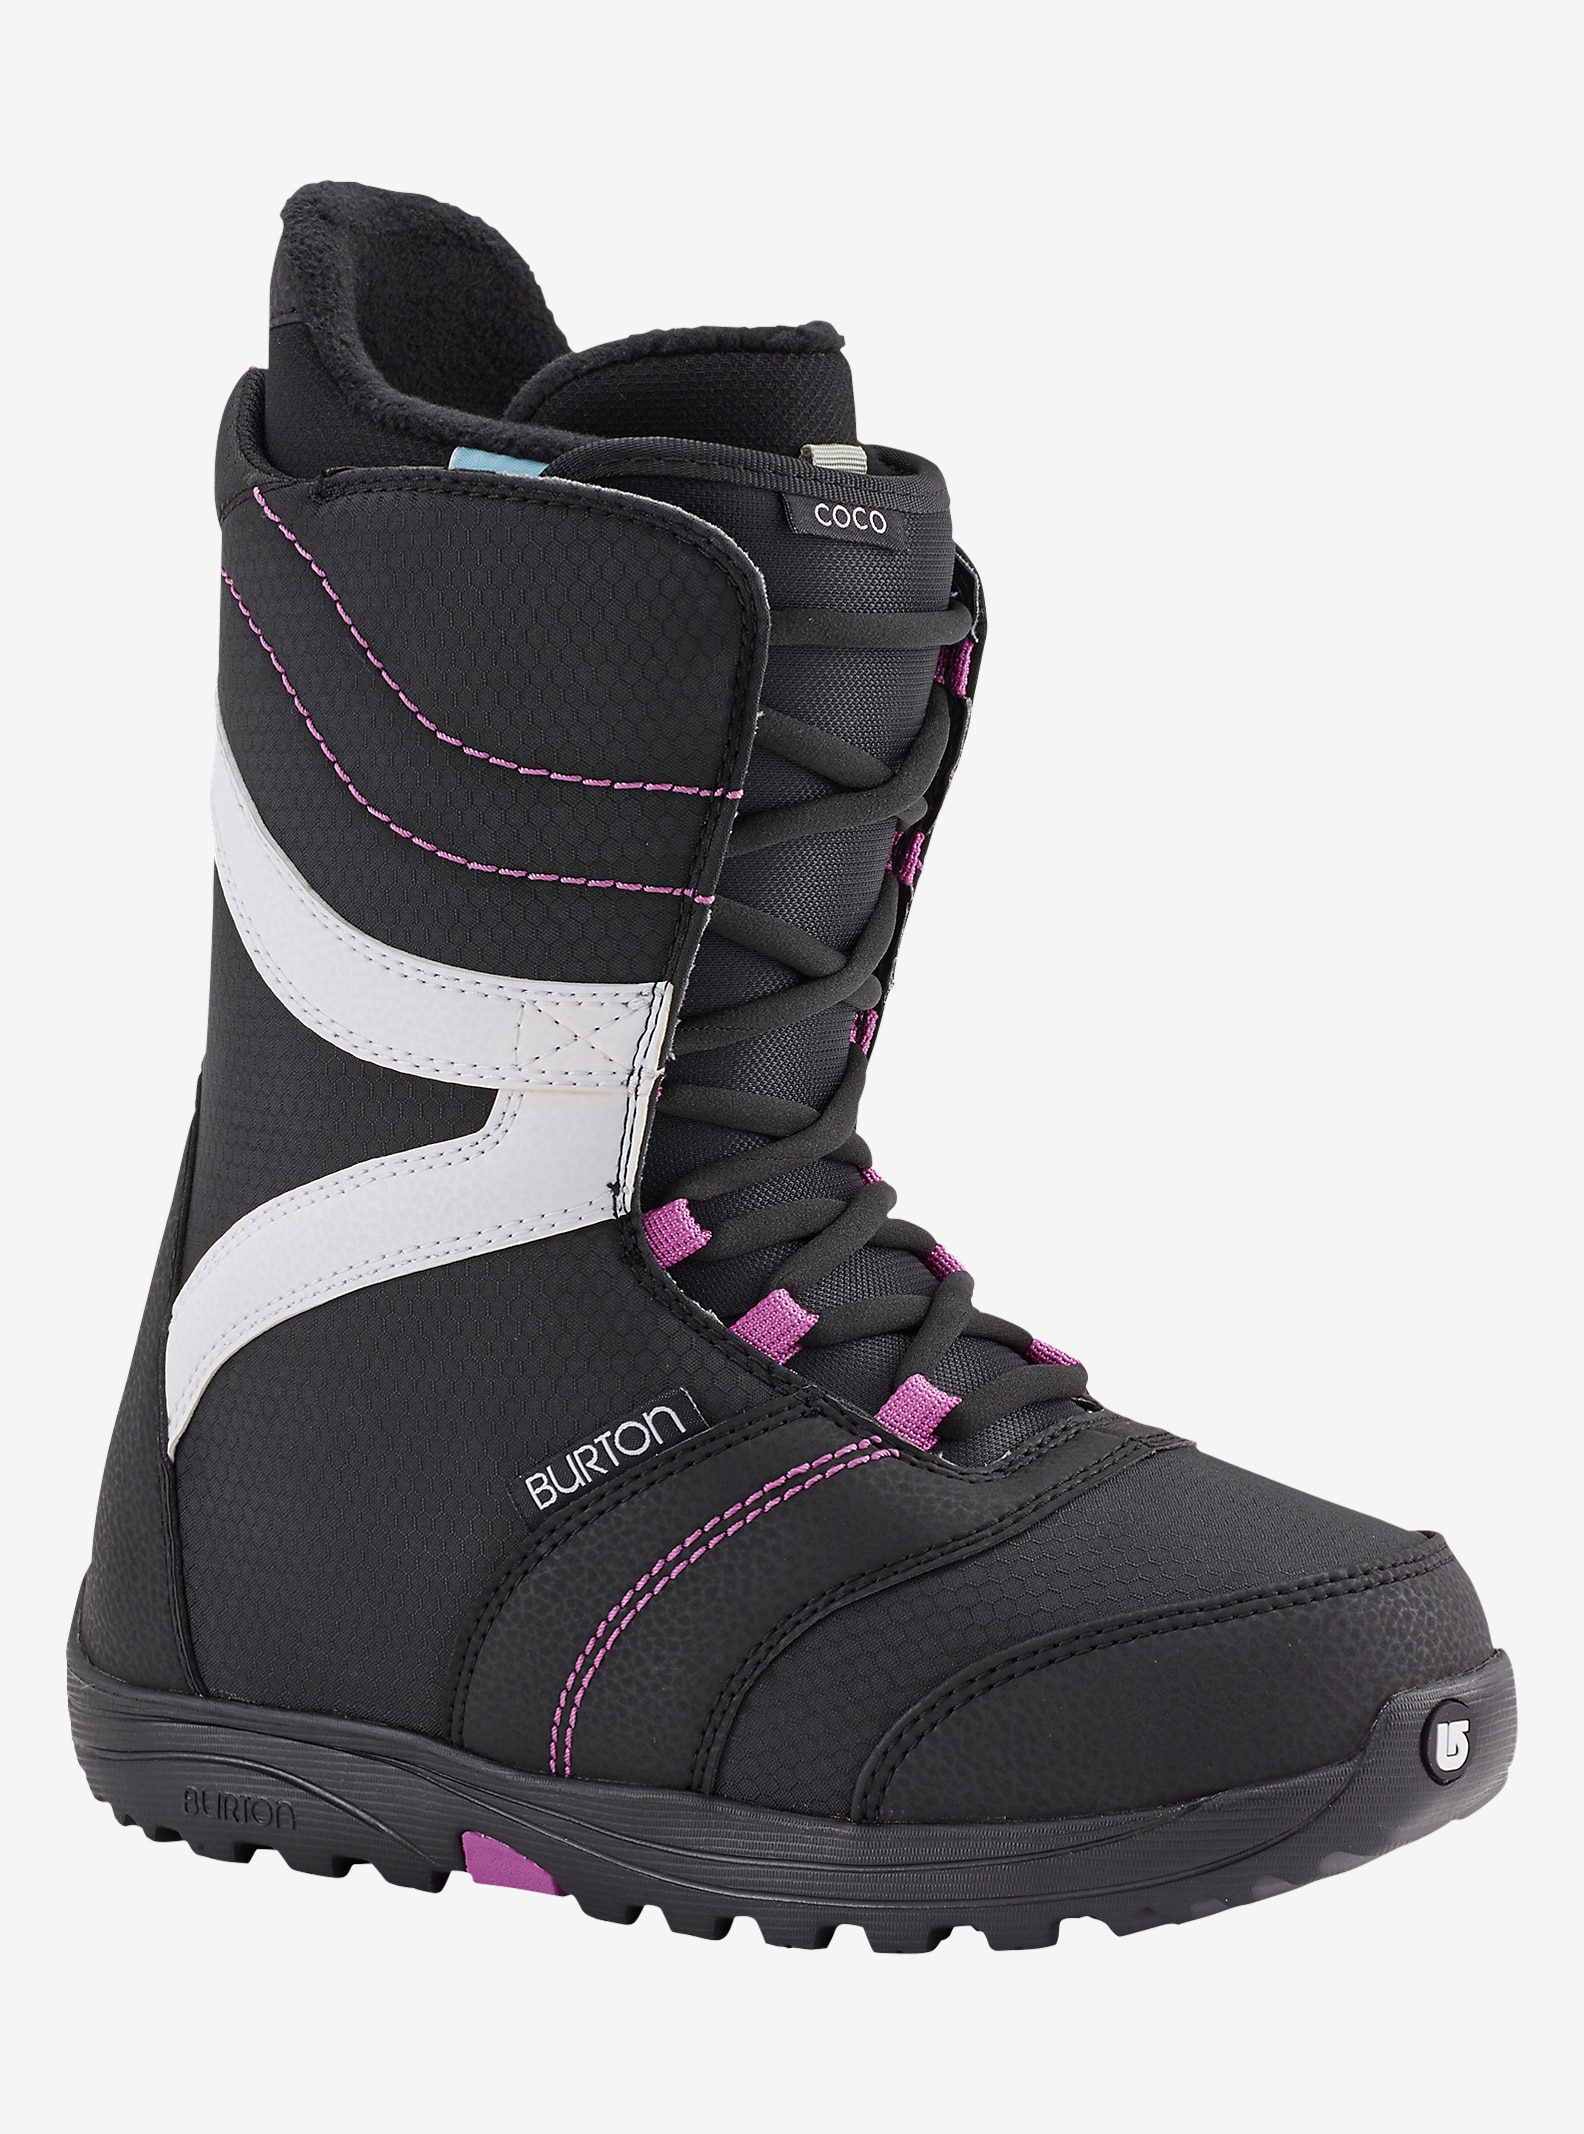 Burton Coco Snowboard Boot shown in Black / Purple